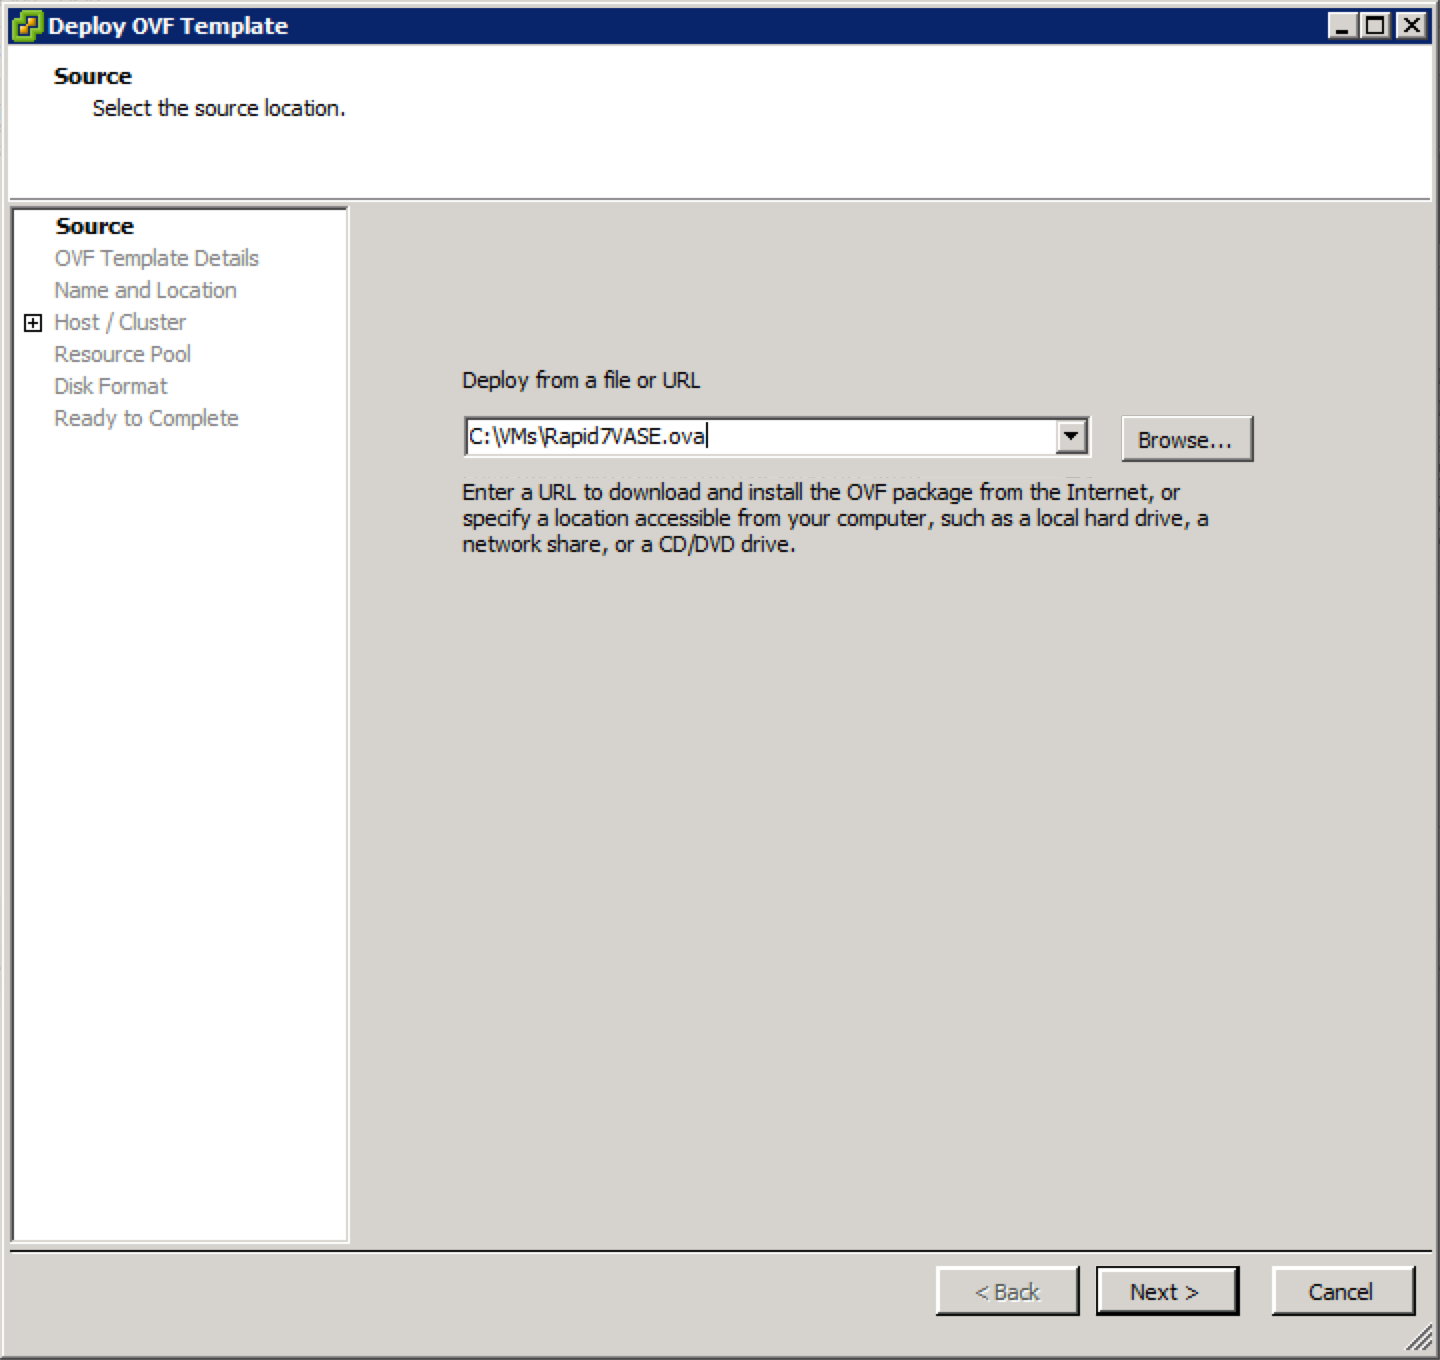 The Deploy OVF template window